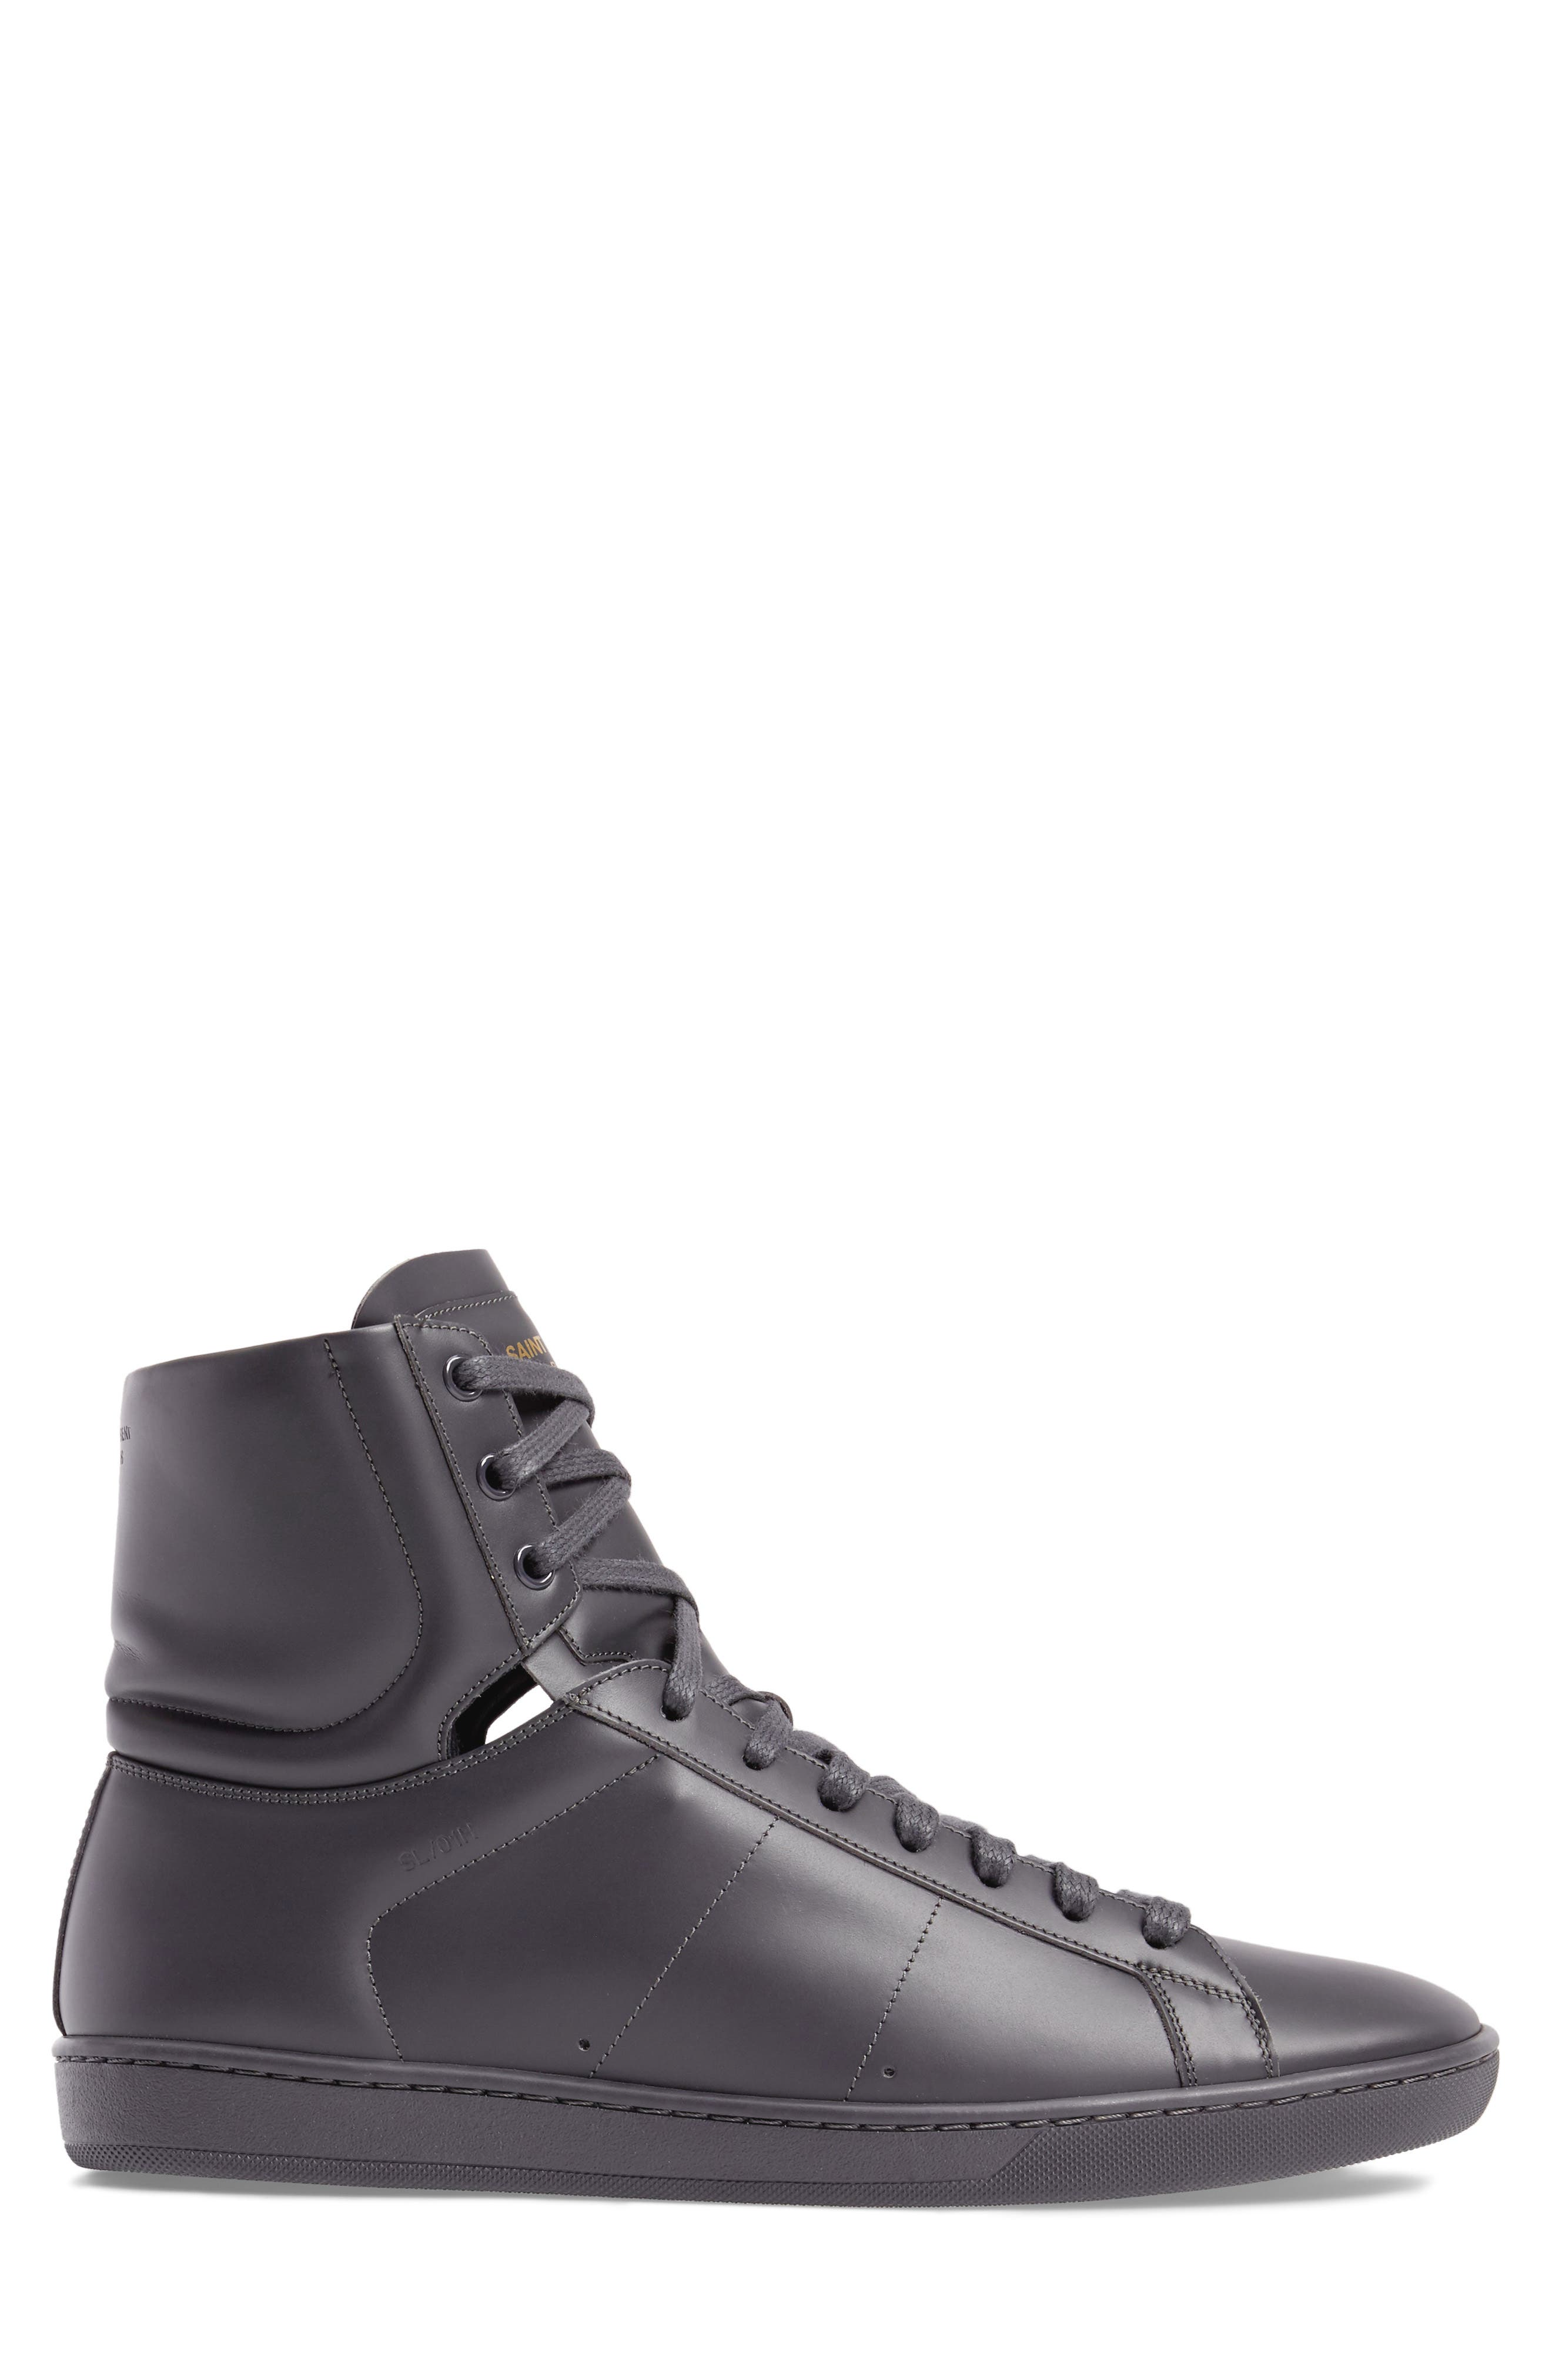 Signature Court Classic Sneaker,                             Alternate thumbnail 3, color,                             Grey Leather